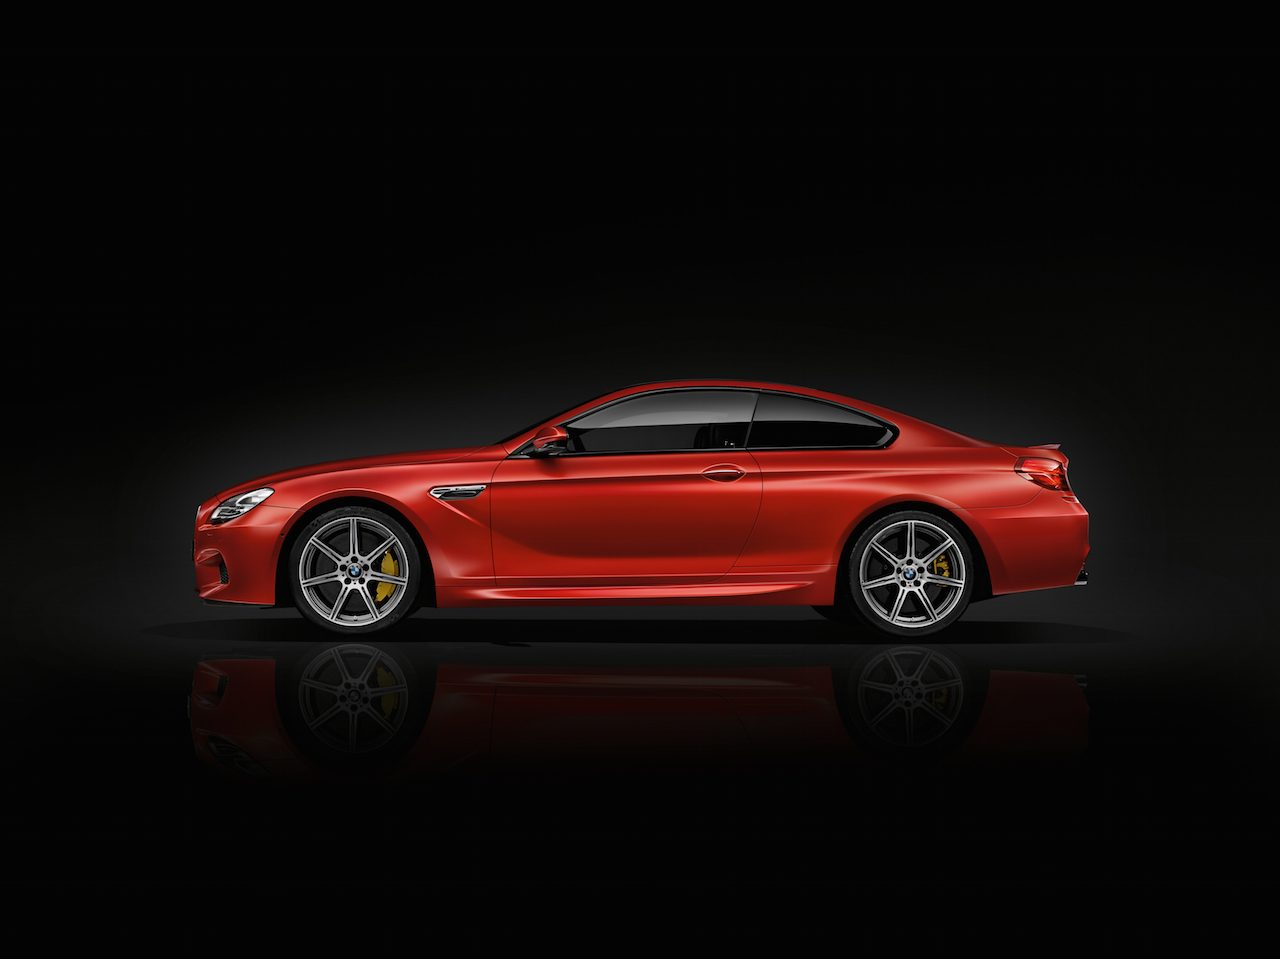 bmw-m6-competition-package-2015-001.jpg